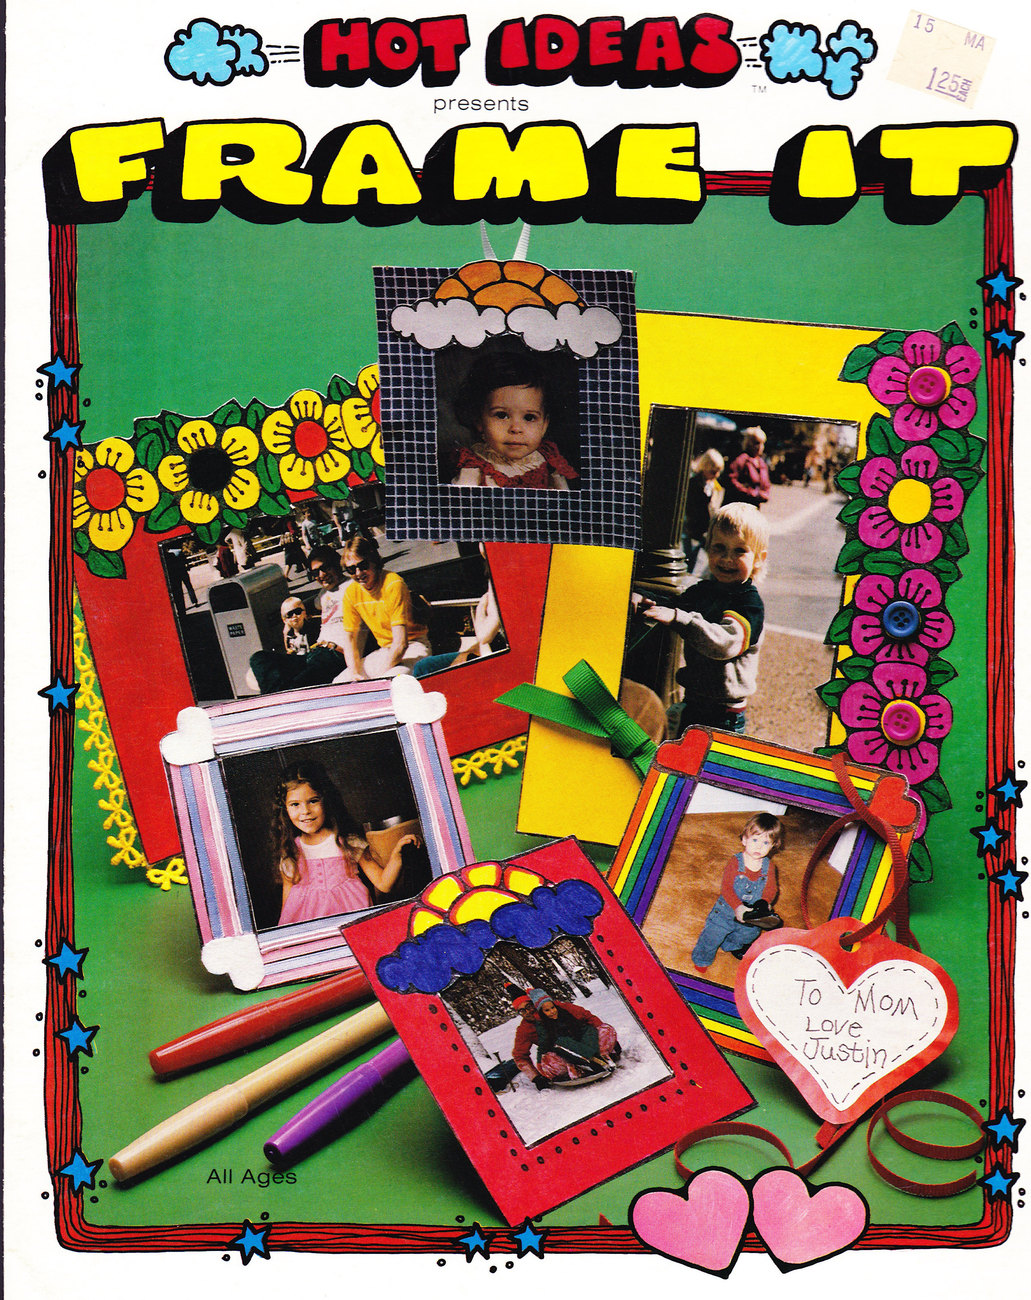 HOT IDEAS PRESENTS FRAME IT FUN & CHILDREN'S CRAFTS